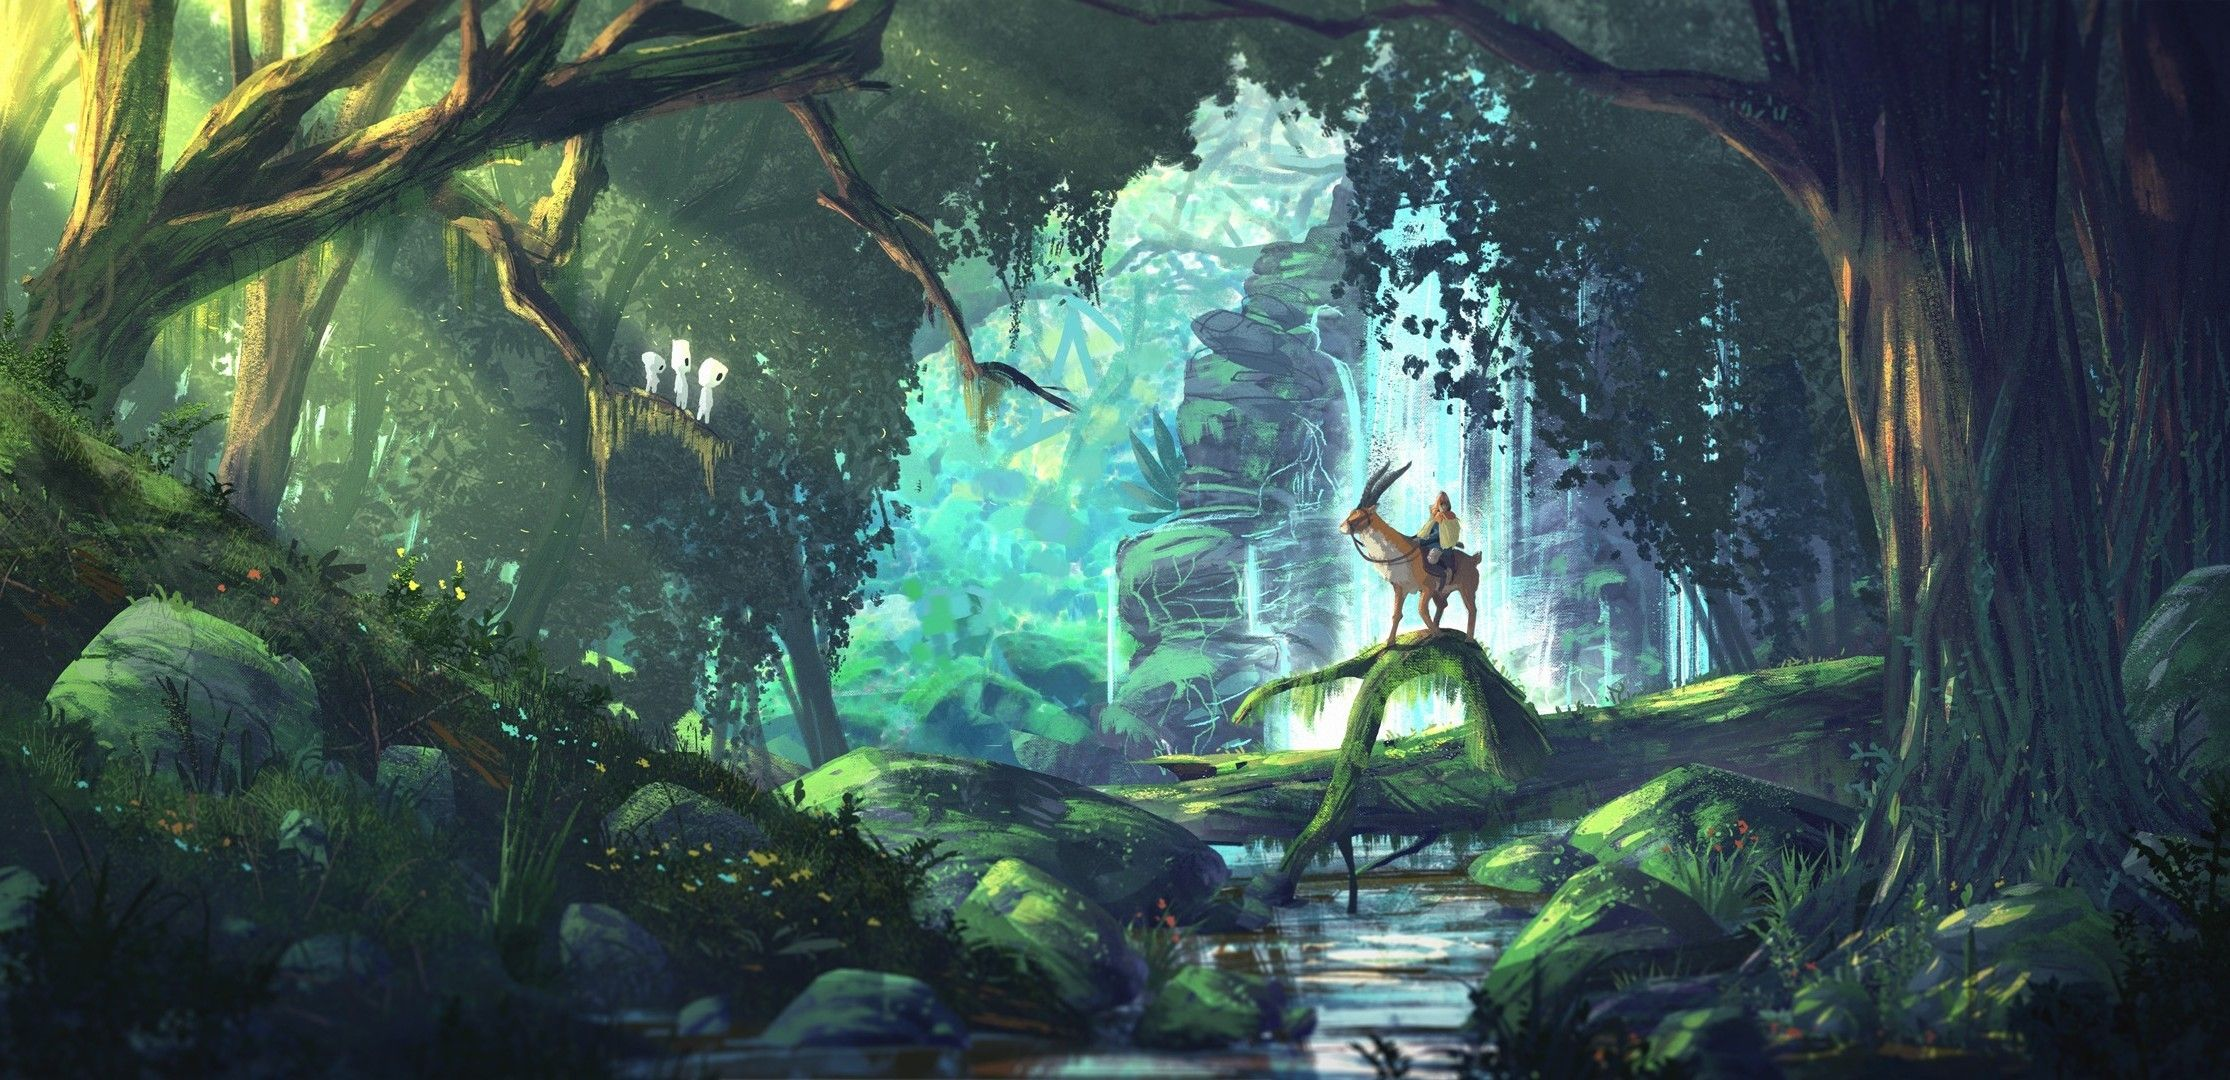 Res 2230x1080 Fantasy Art Anime Forest Princess Mononoke